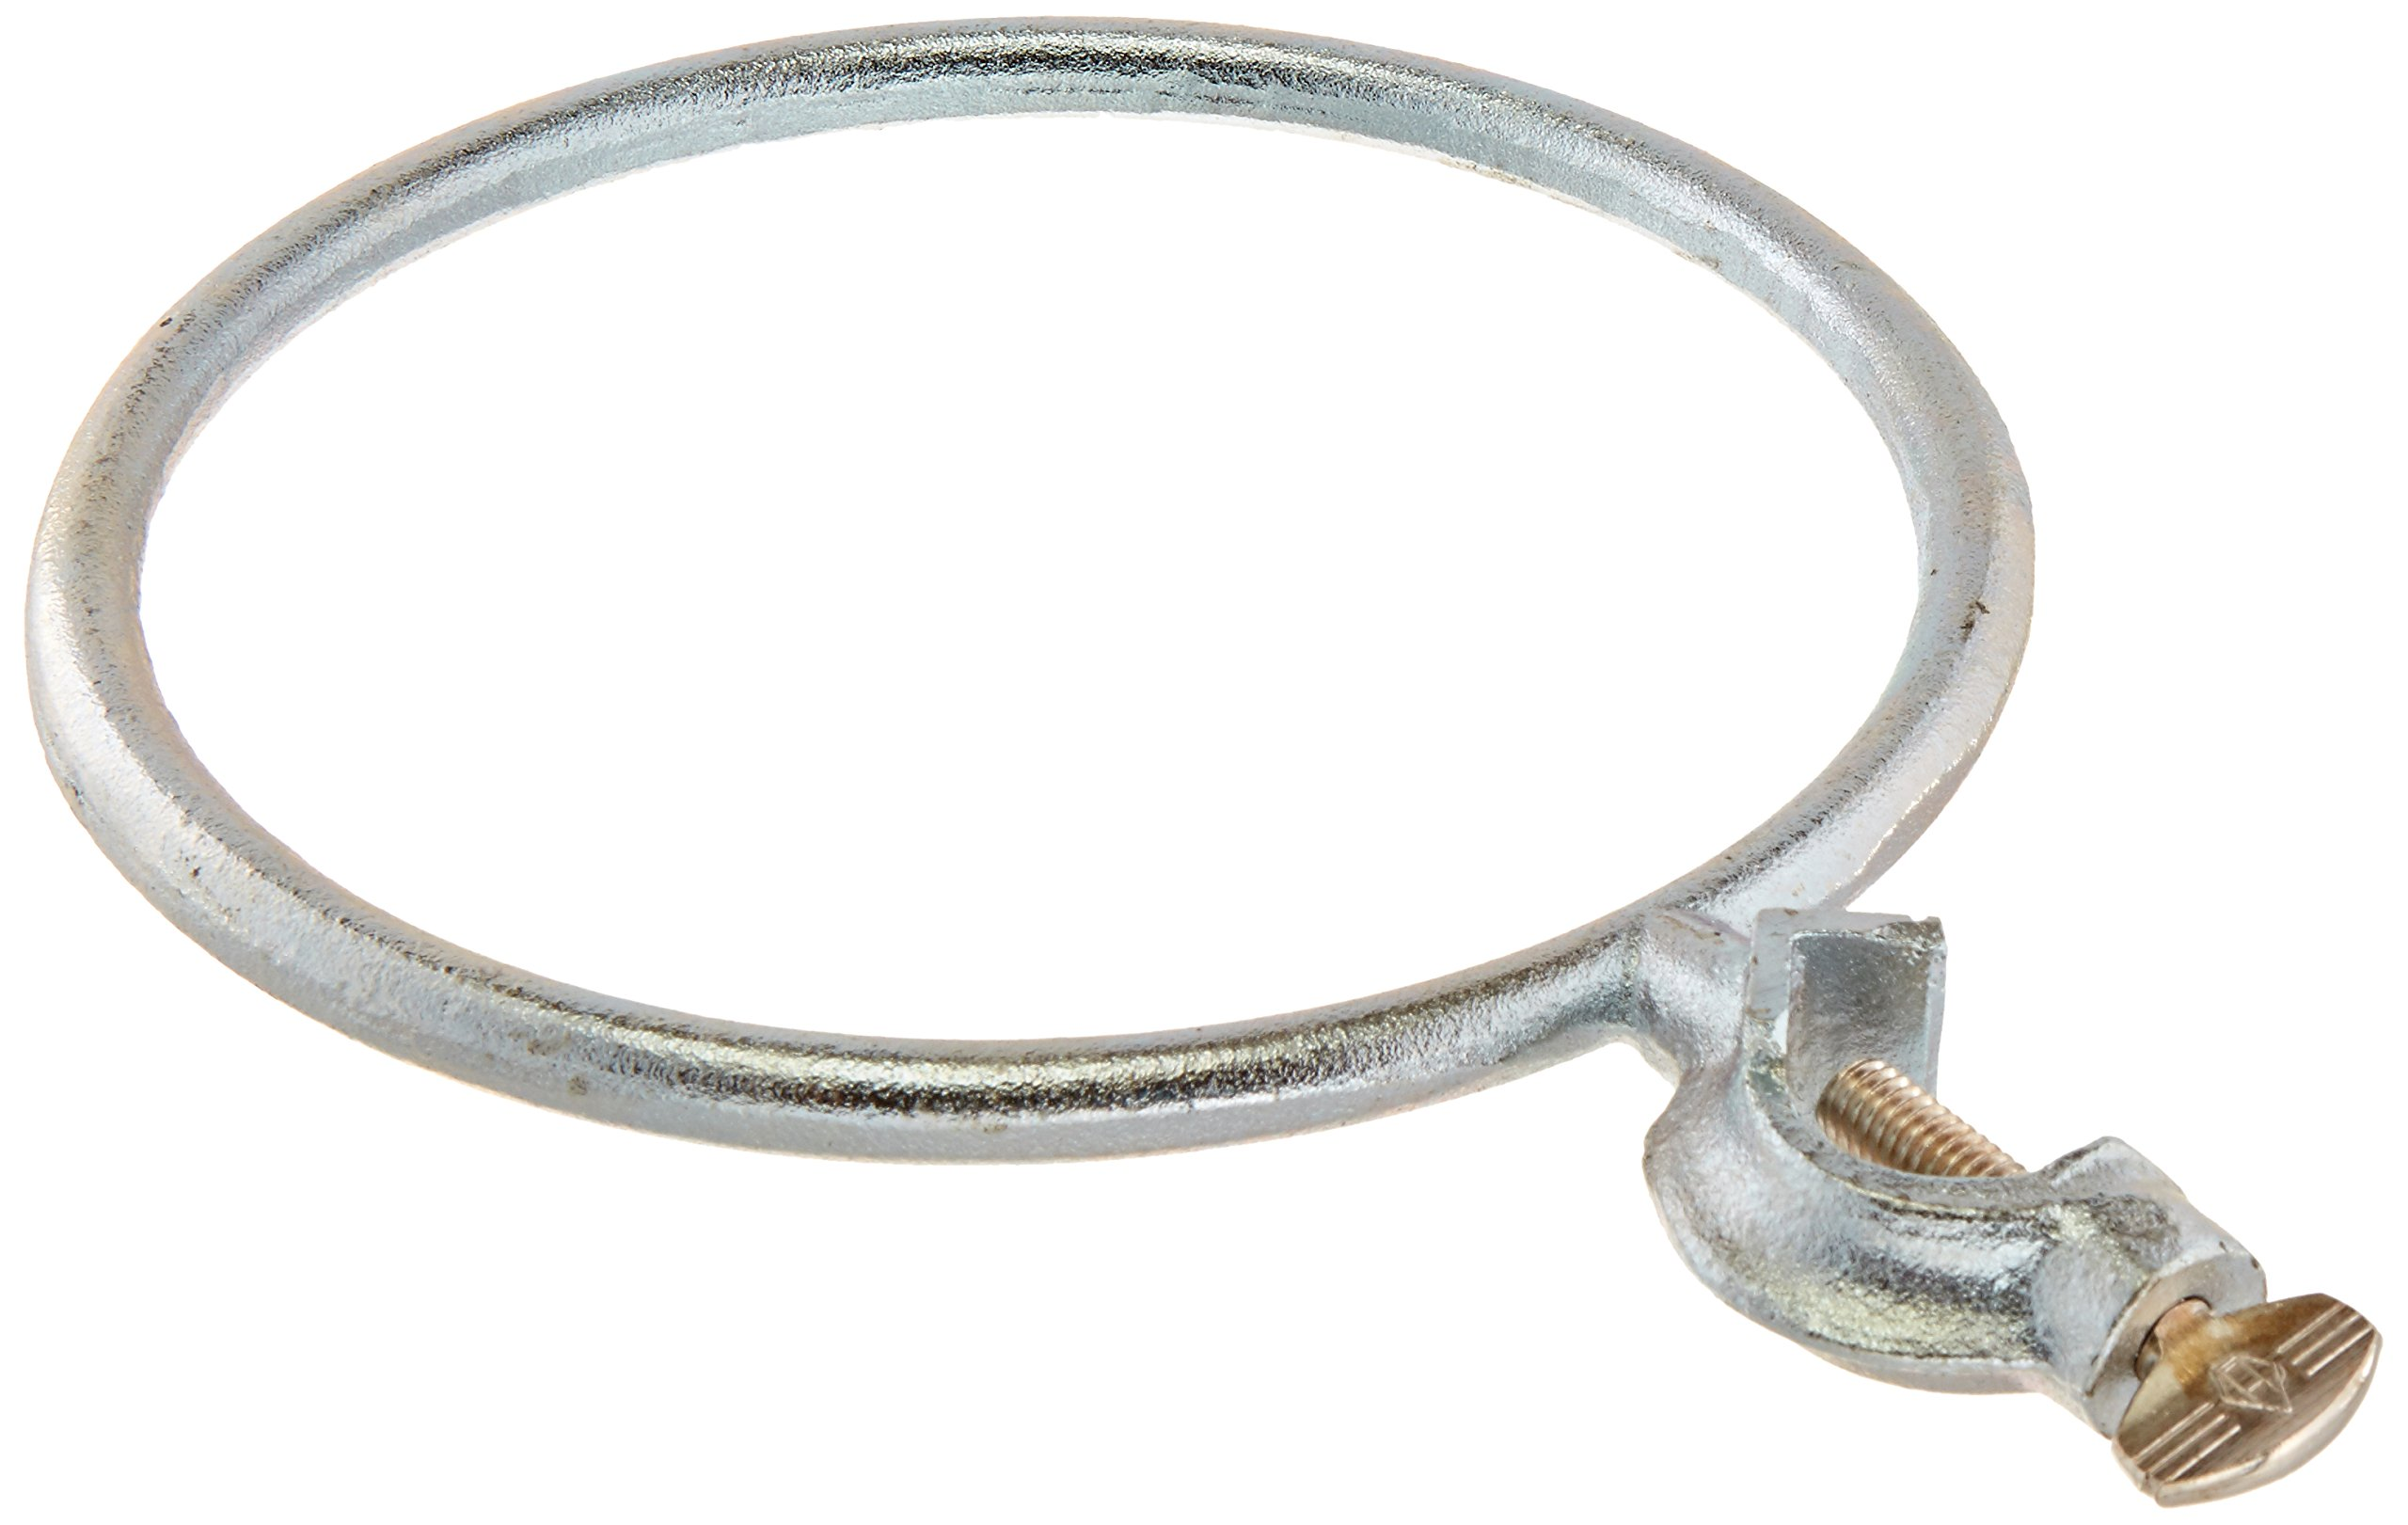 HUMBOLDT H-18370 Cast Iron Support Ring, 7'' by Humboldt